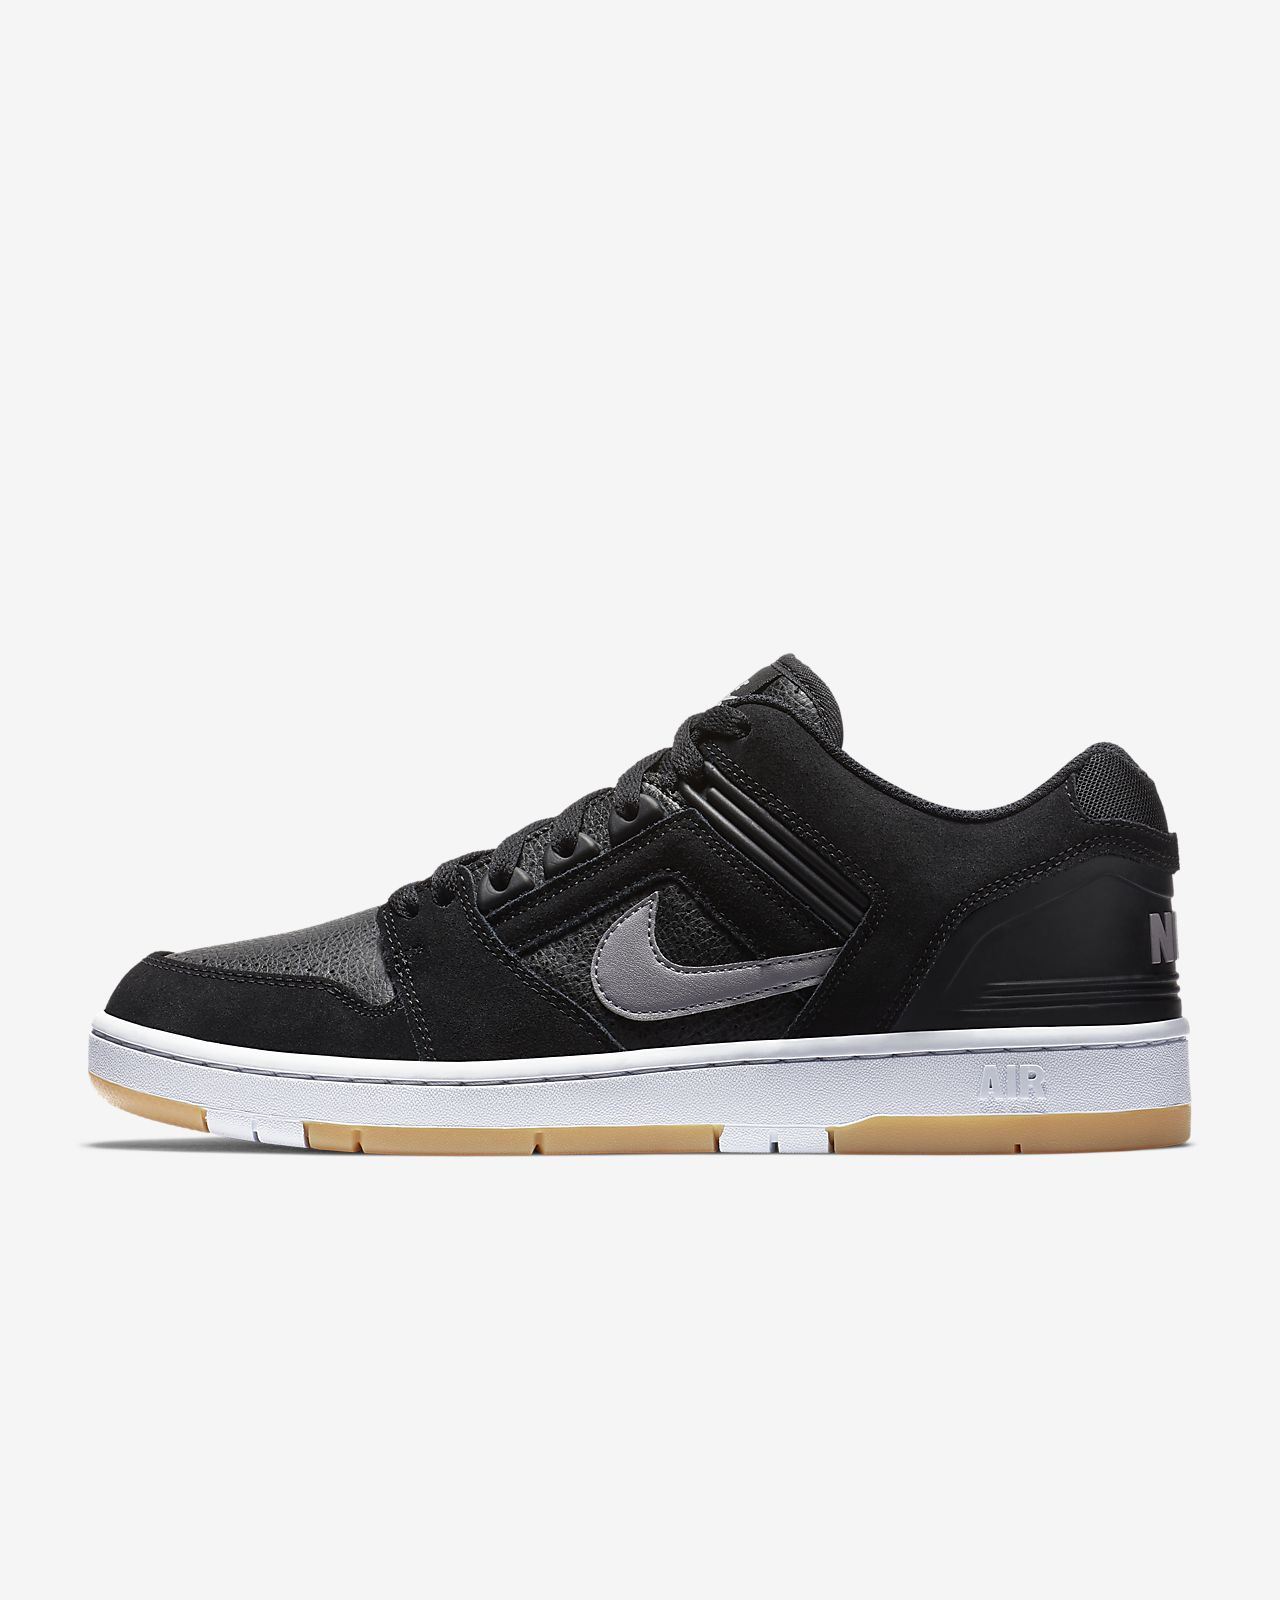 huge selection of 97aee 59cde ... Nike SB Air Force II Low Mens Skateboarding Shoe